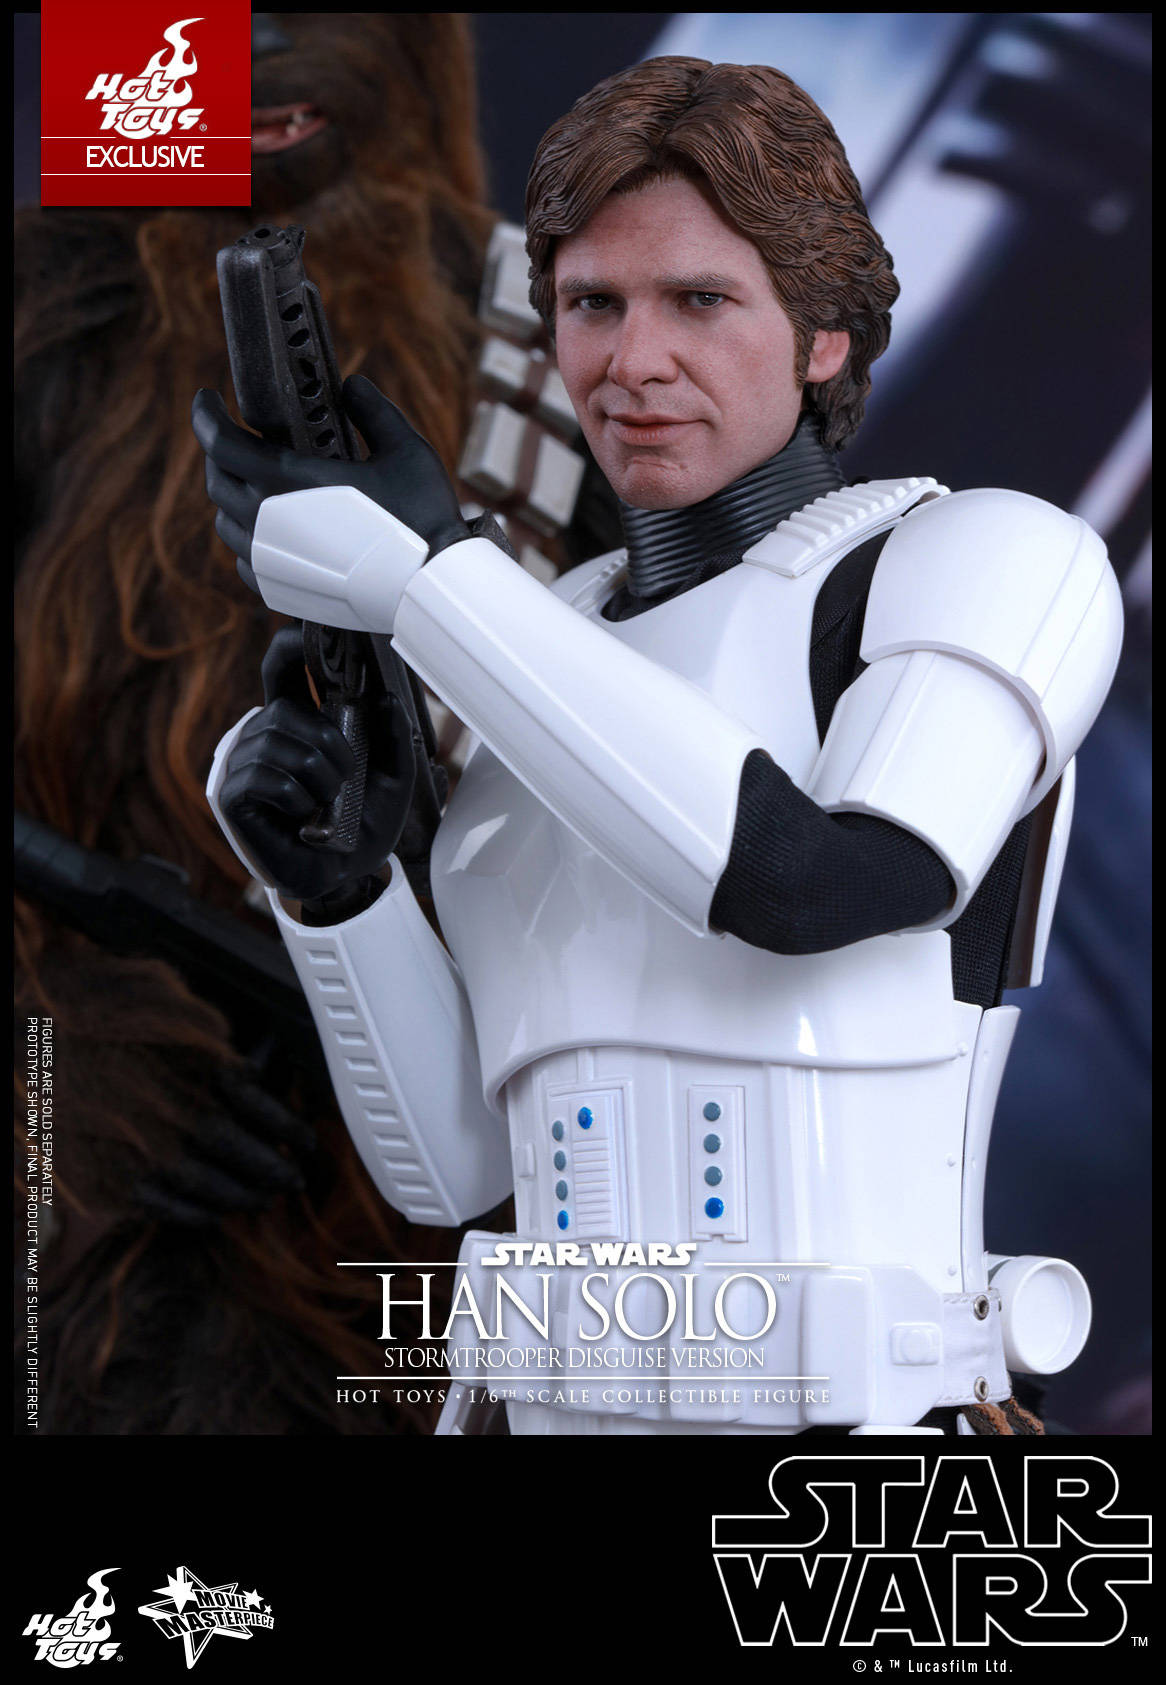 Hot-Toys---Star-Wars---Han-Solo-(Stormtrooper-Disguise-Version)-Collectible-Figure PR12